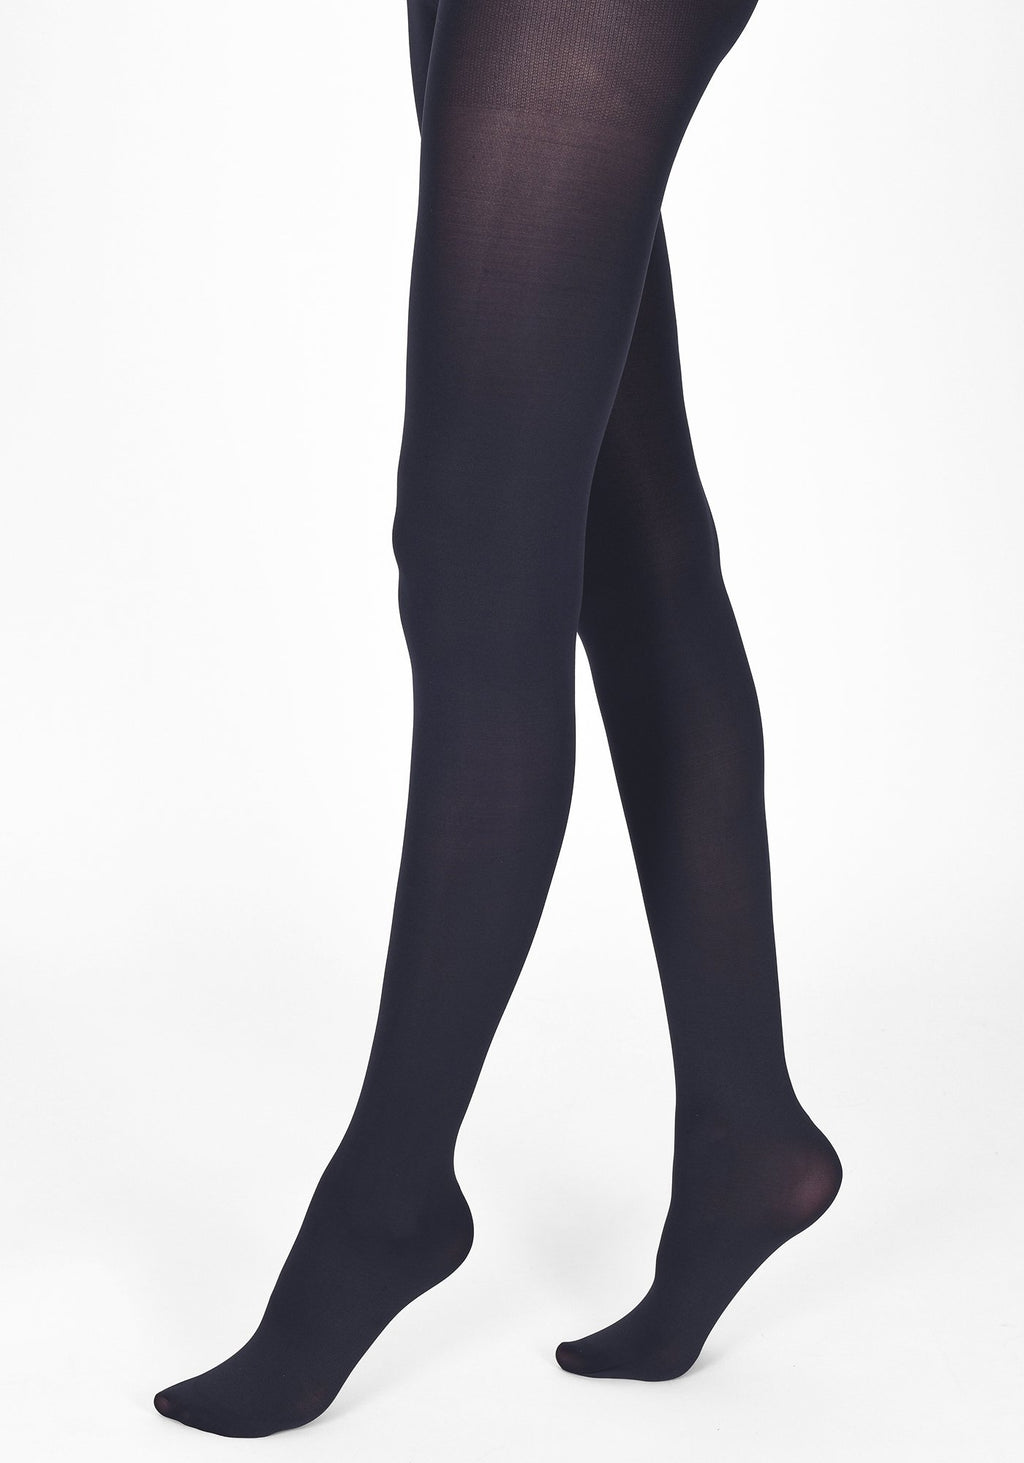 navy blue tights 100 denier 1